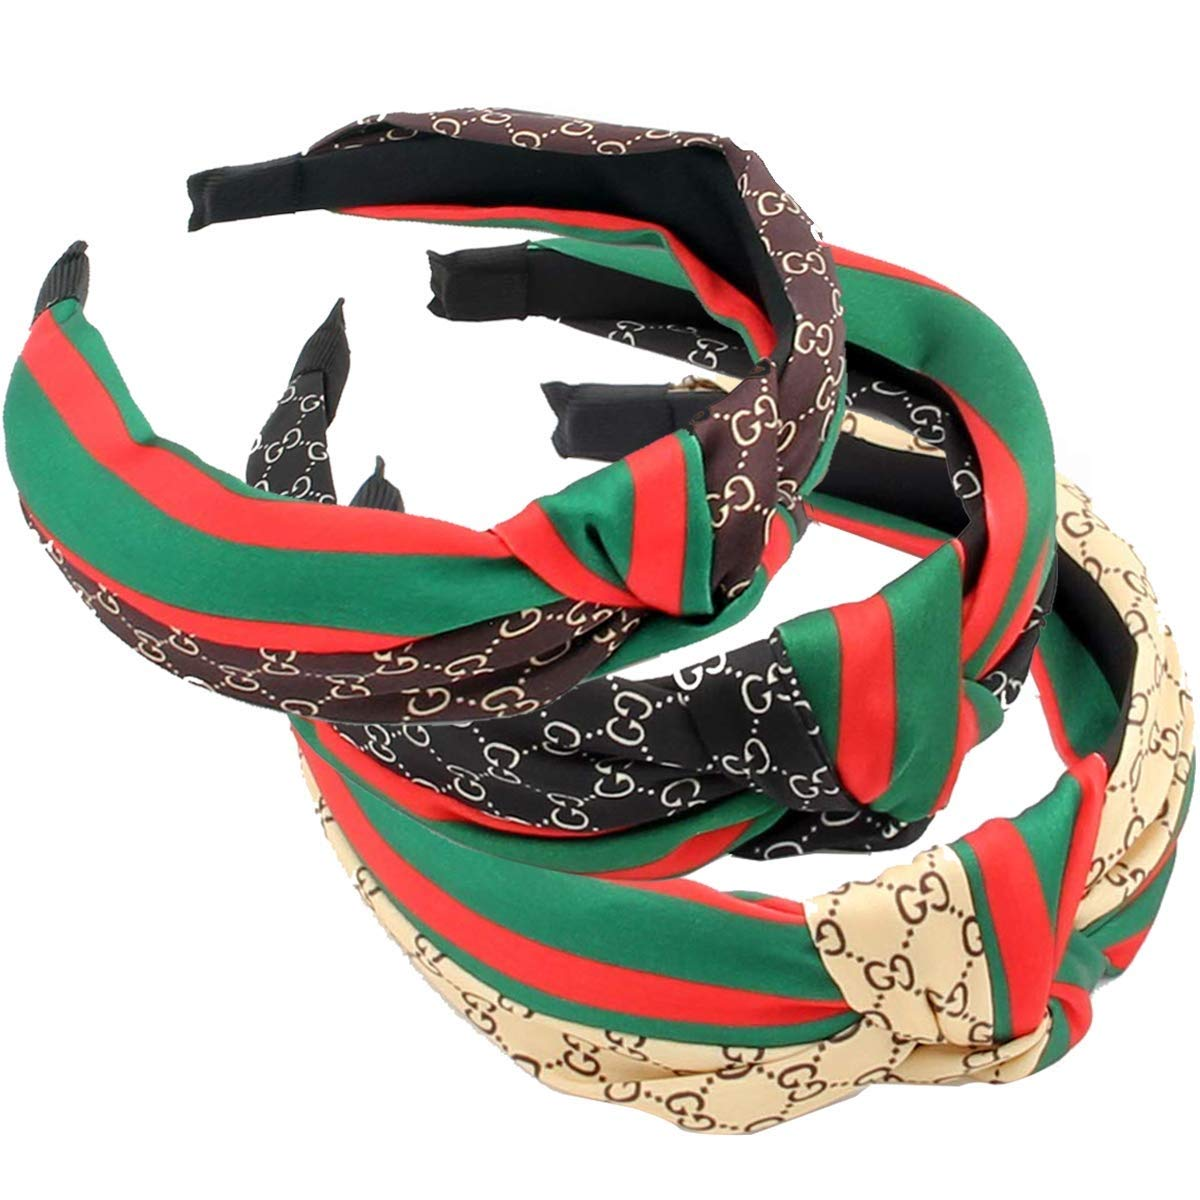 Domoki Designer Red Green Stripe Headbands - 3 Pack Fashion Bow Knot CC Letter Print Hair Hoops for Women - Retro Wide Cross Knot Hairbands with Silk Cloth Wrapped for Girls by Domoki